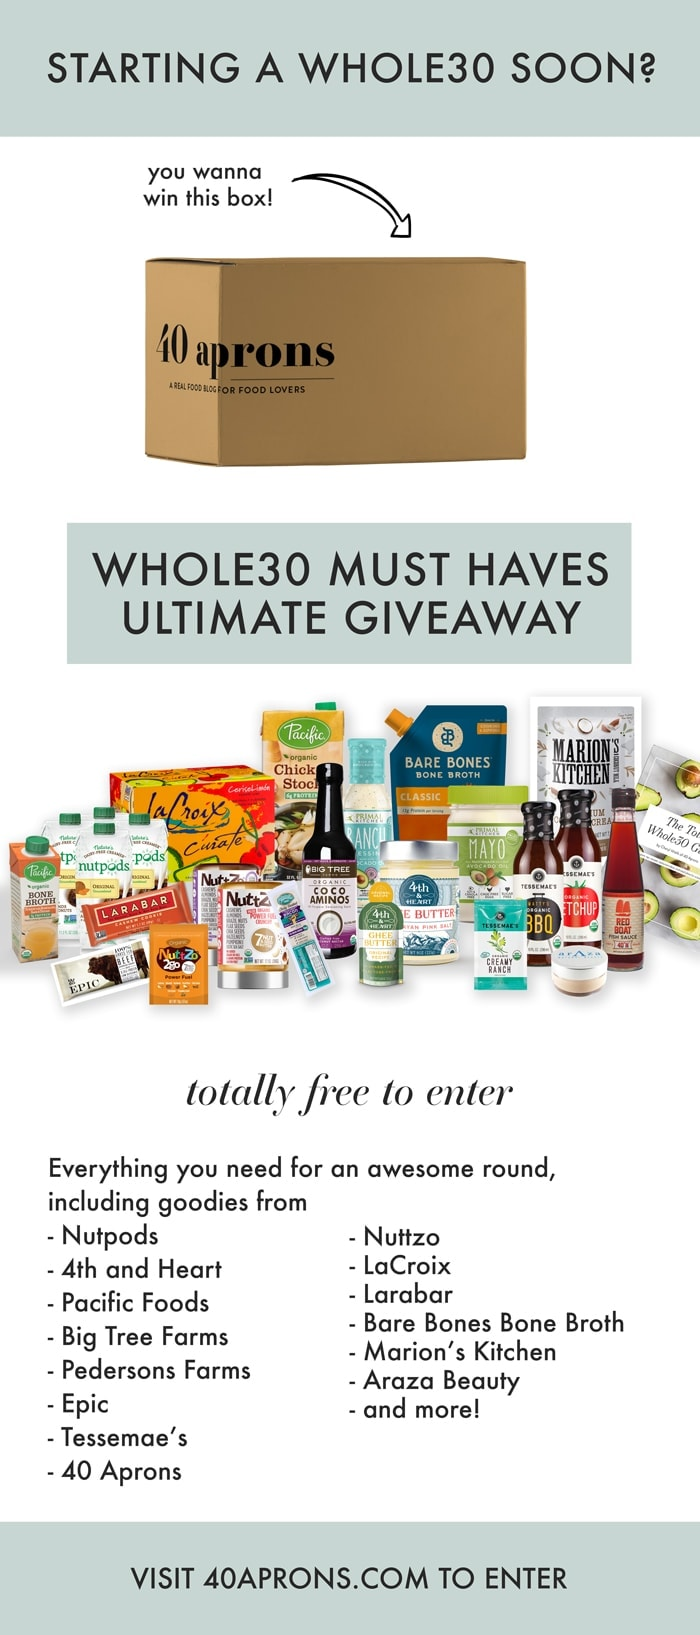 The ultimate Whole30 Giveaway! I've bundled my favorite Whole30 products for the most epic Whole30 giveaway. Enter for free - good luck on this Whole30 giveaway!